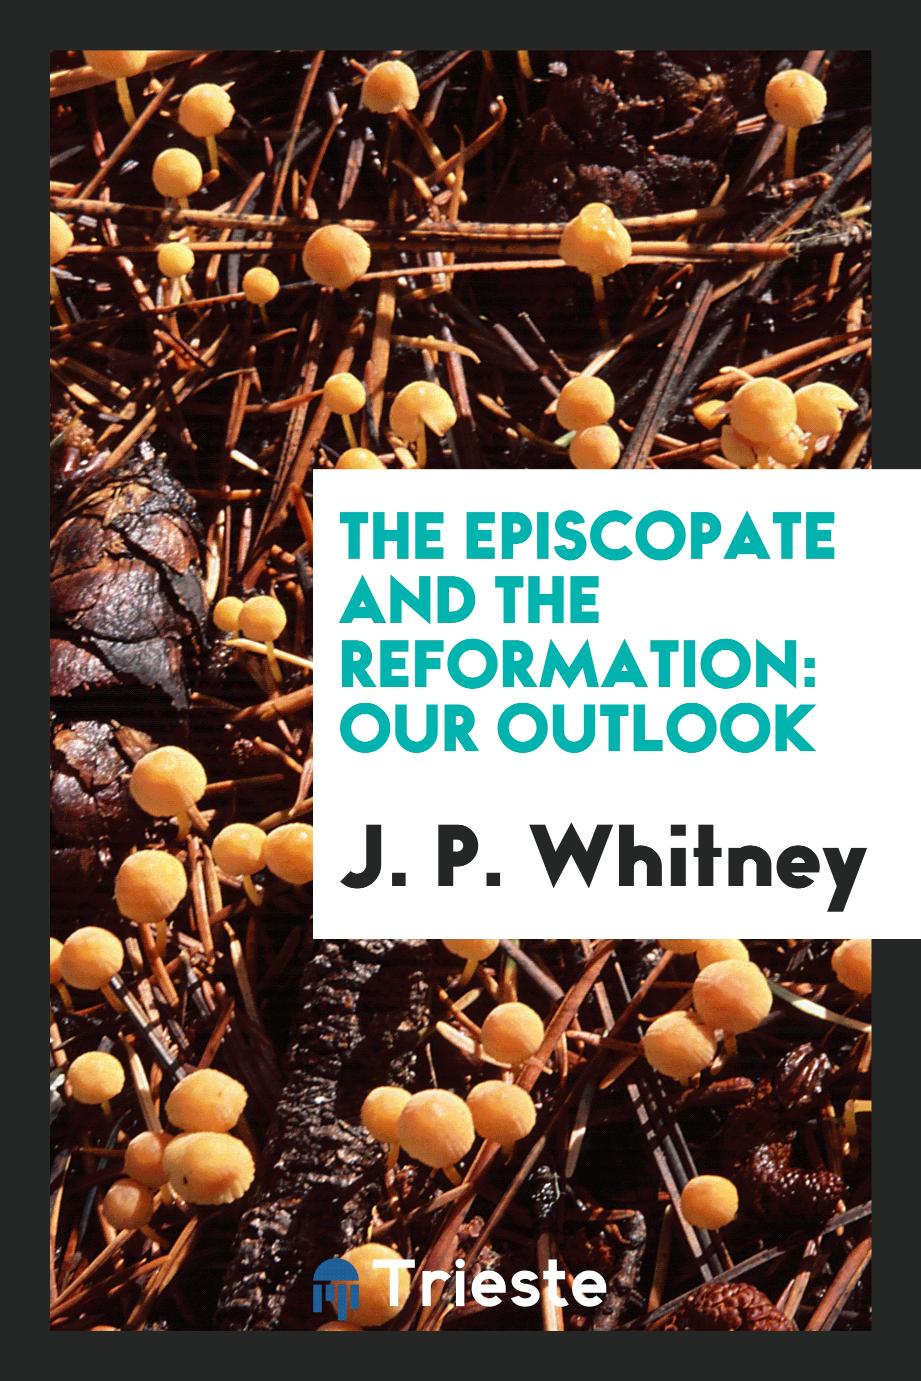 The Episcopate and the Reformation: our outlook